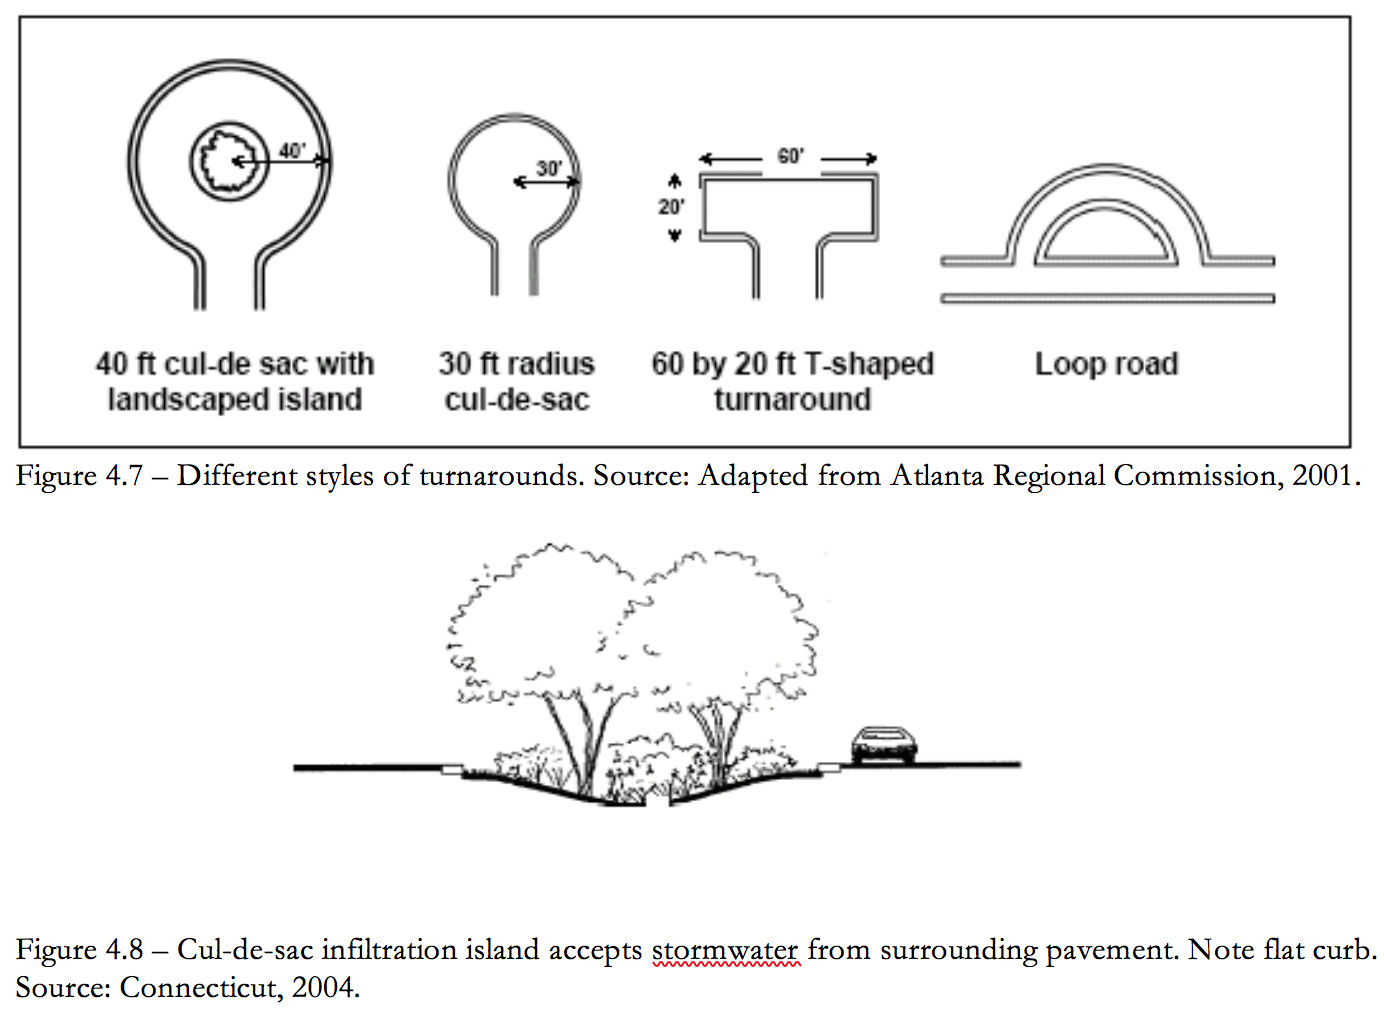 Figure 4.8 Cul-de-sac infiltration island accepts stormwater from surrounding pavement.